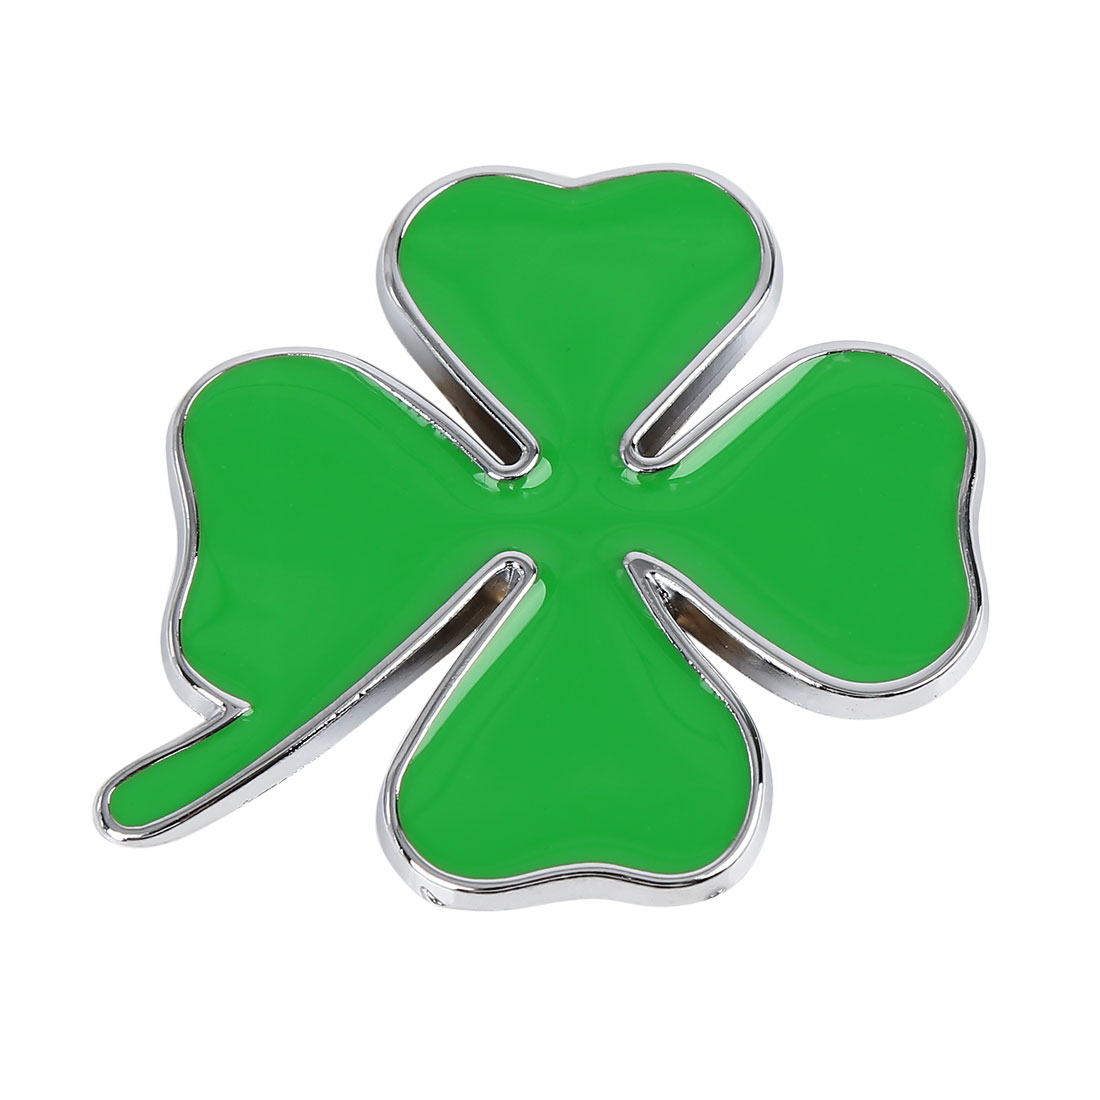 Green Four Leaves Shaped Car Decorative Emblem Badge Decal Sticker 7.5 x 6.5cm